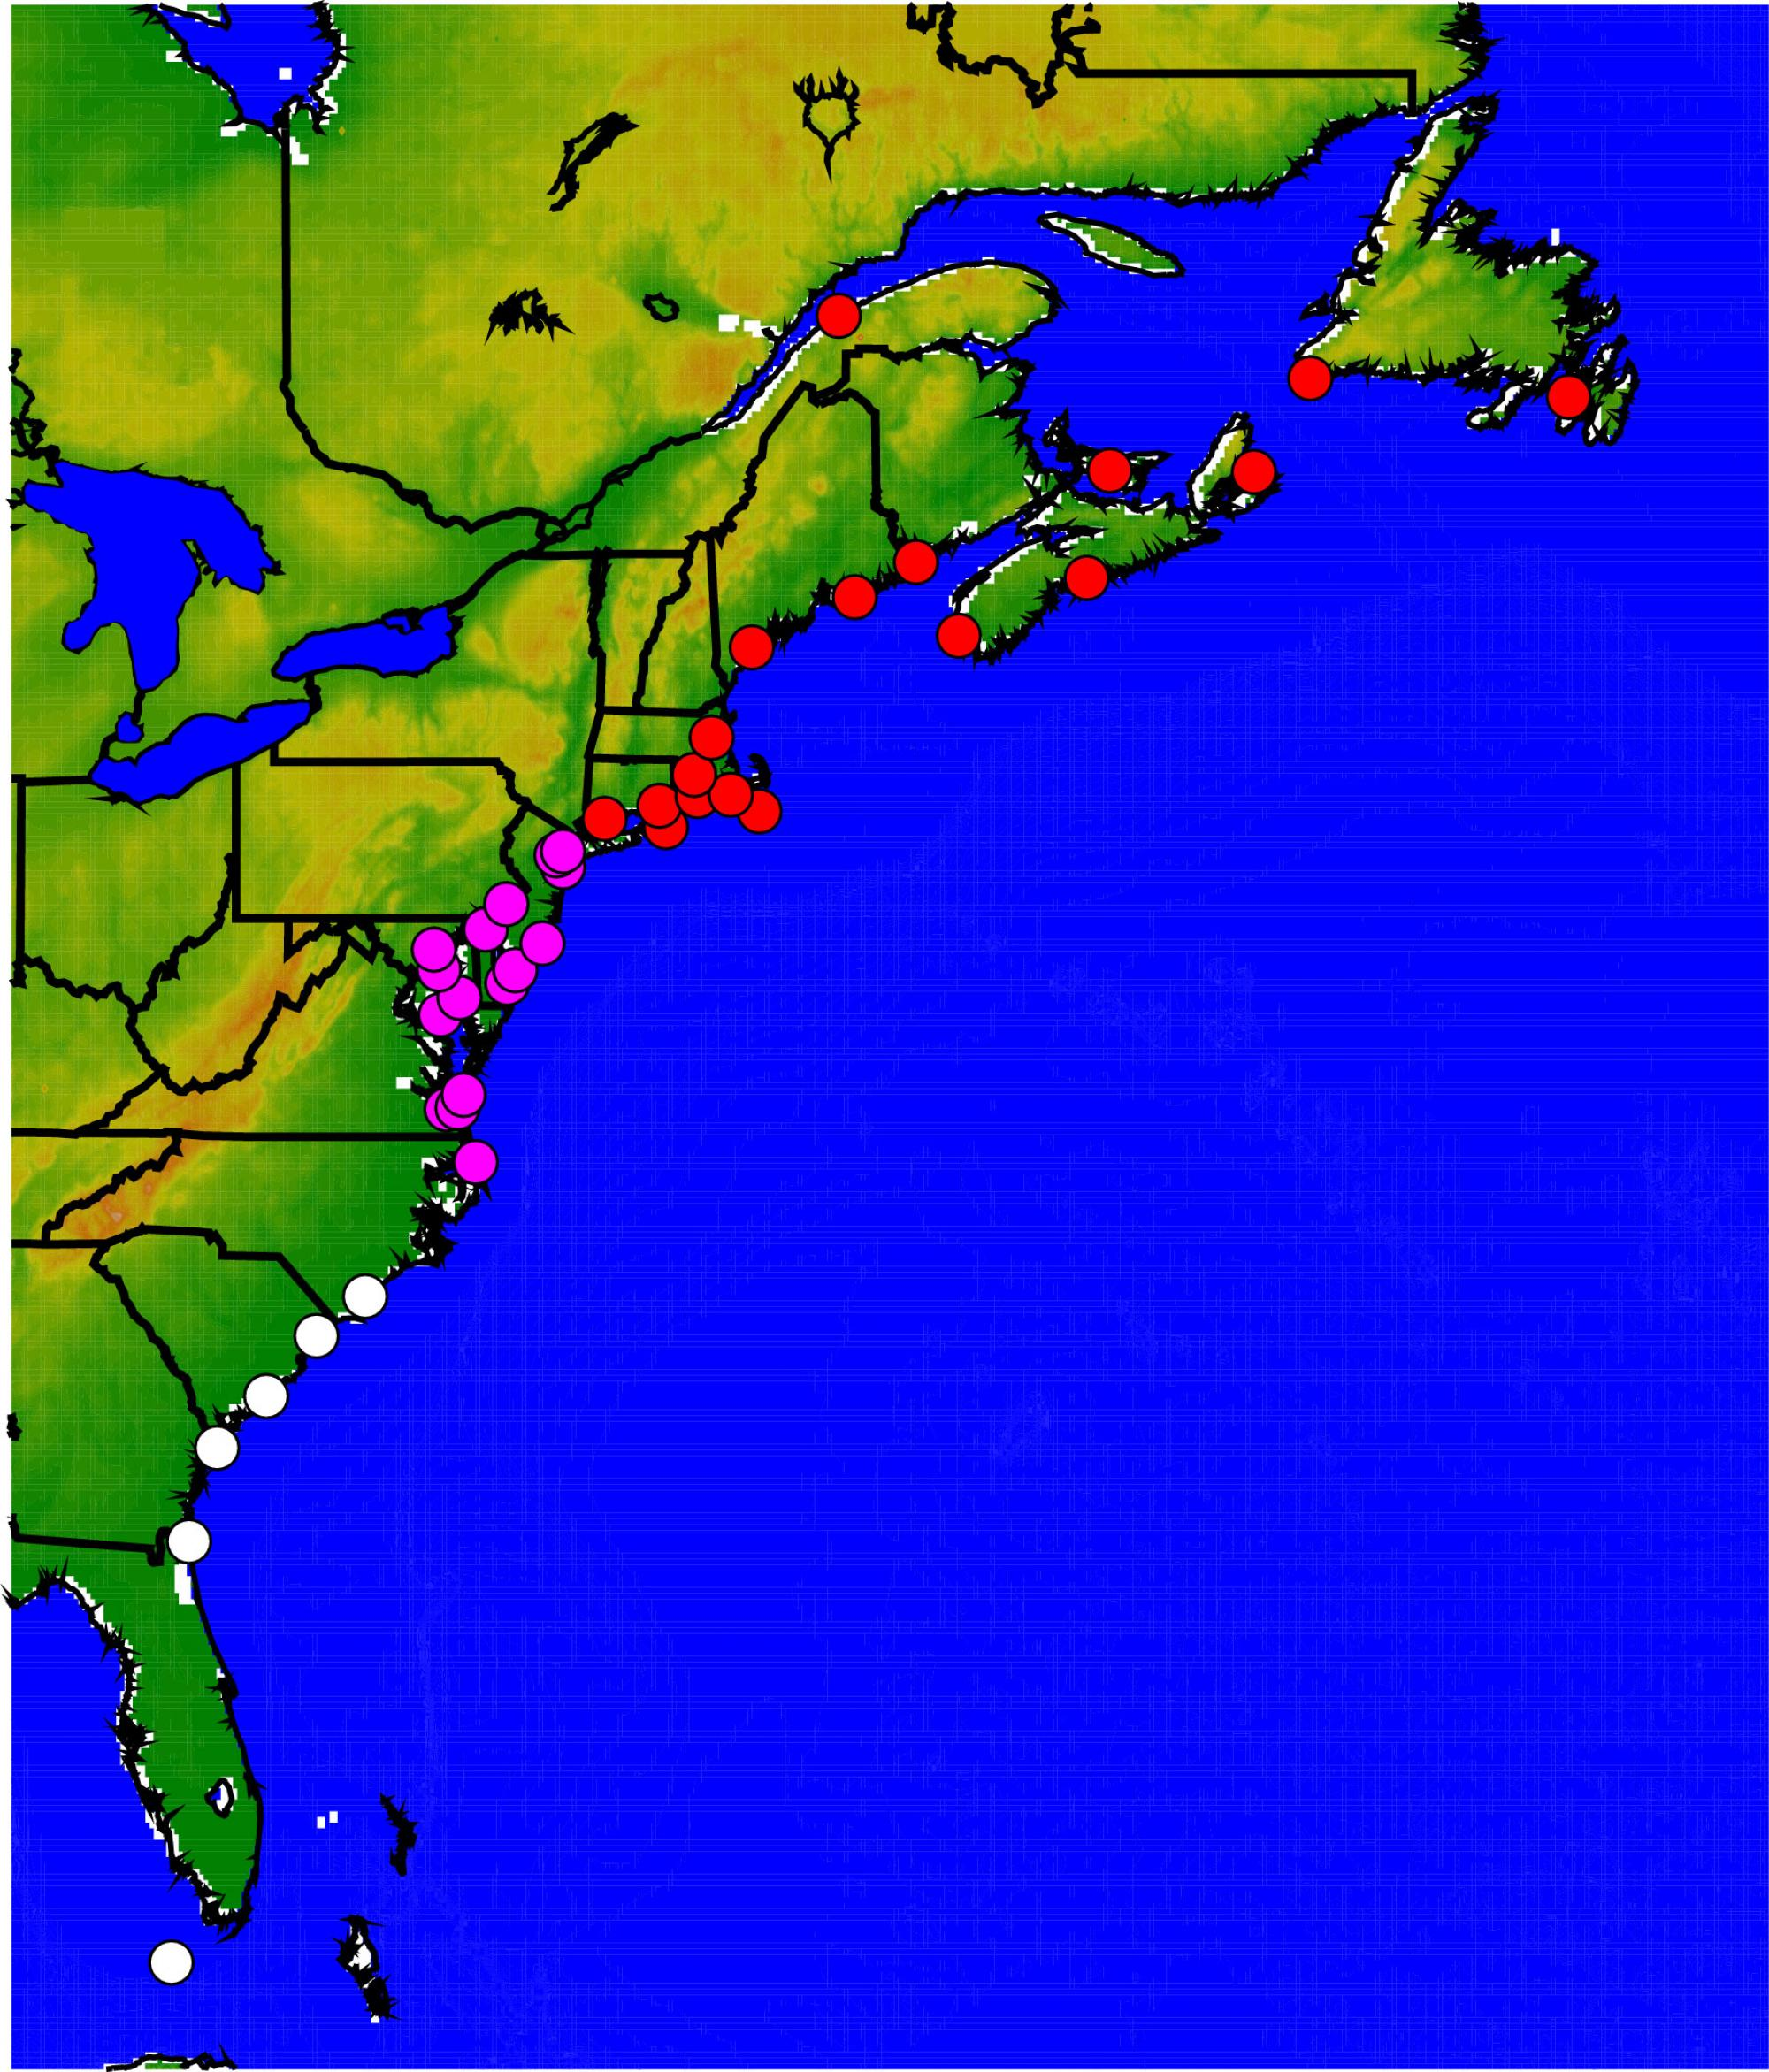 By using historical data from the 40 tide gauges shown on this map, UA geoscientist Paul Goddard and his colleagues determined that sea level rose four inches from New York to Newfoundland  in 2009 and 2010. Gauges from New York south to Cape Hatteras  sh